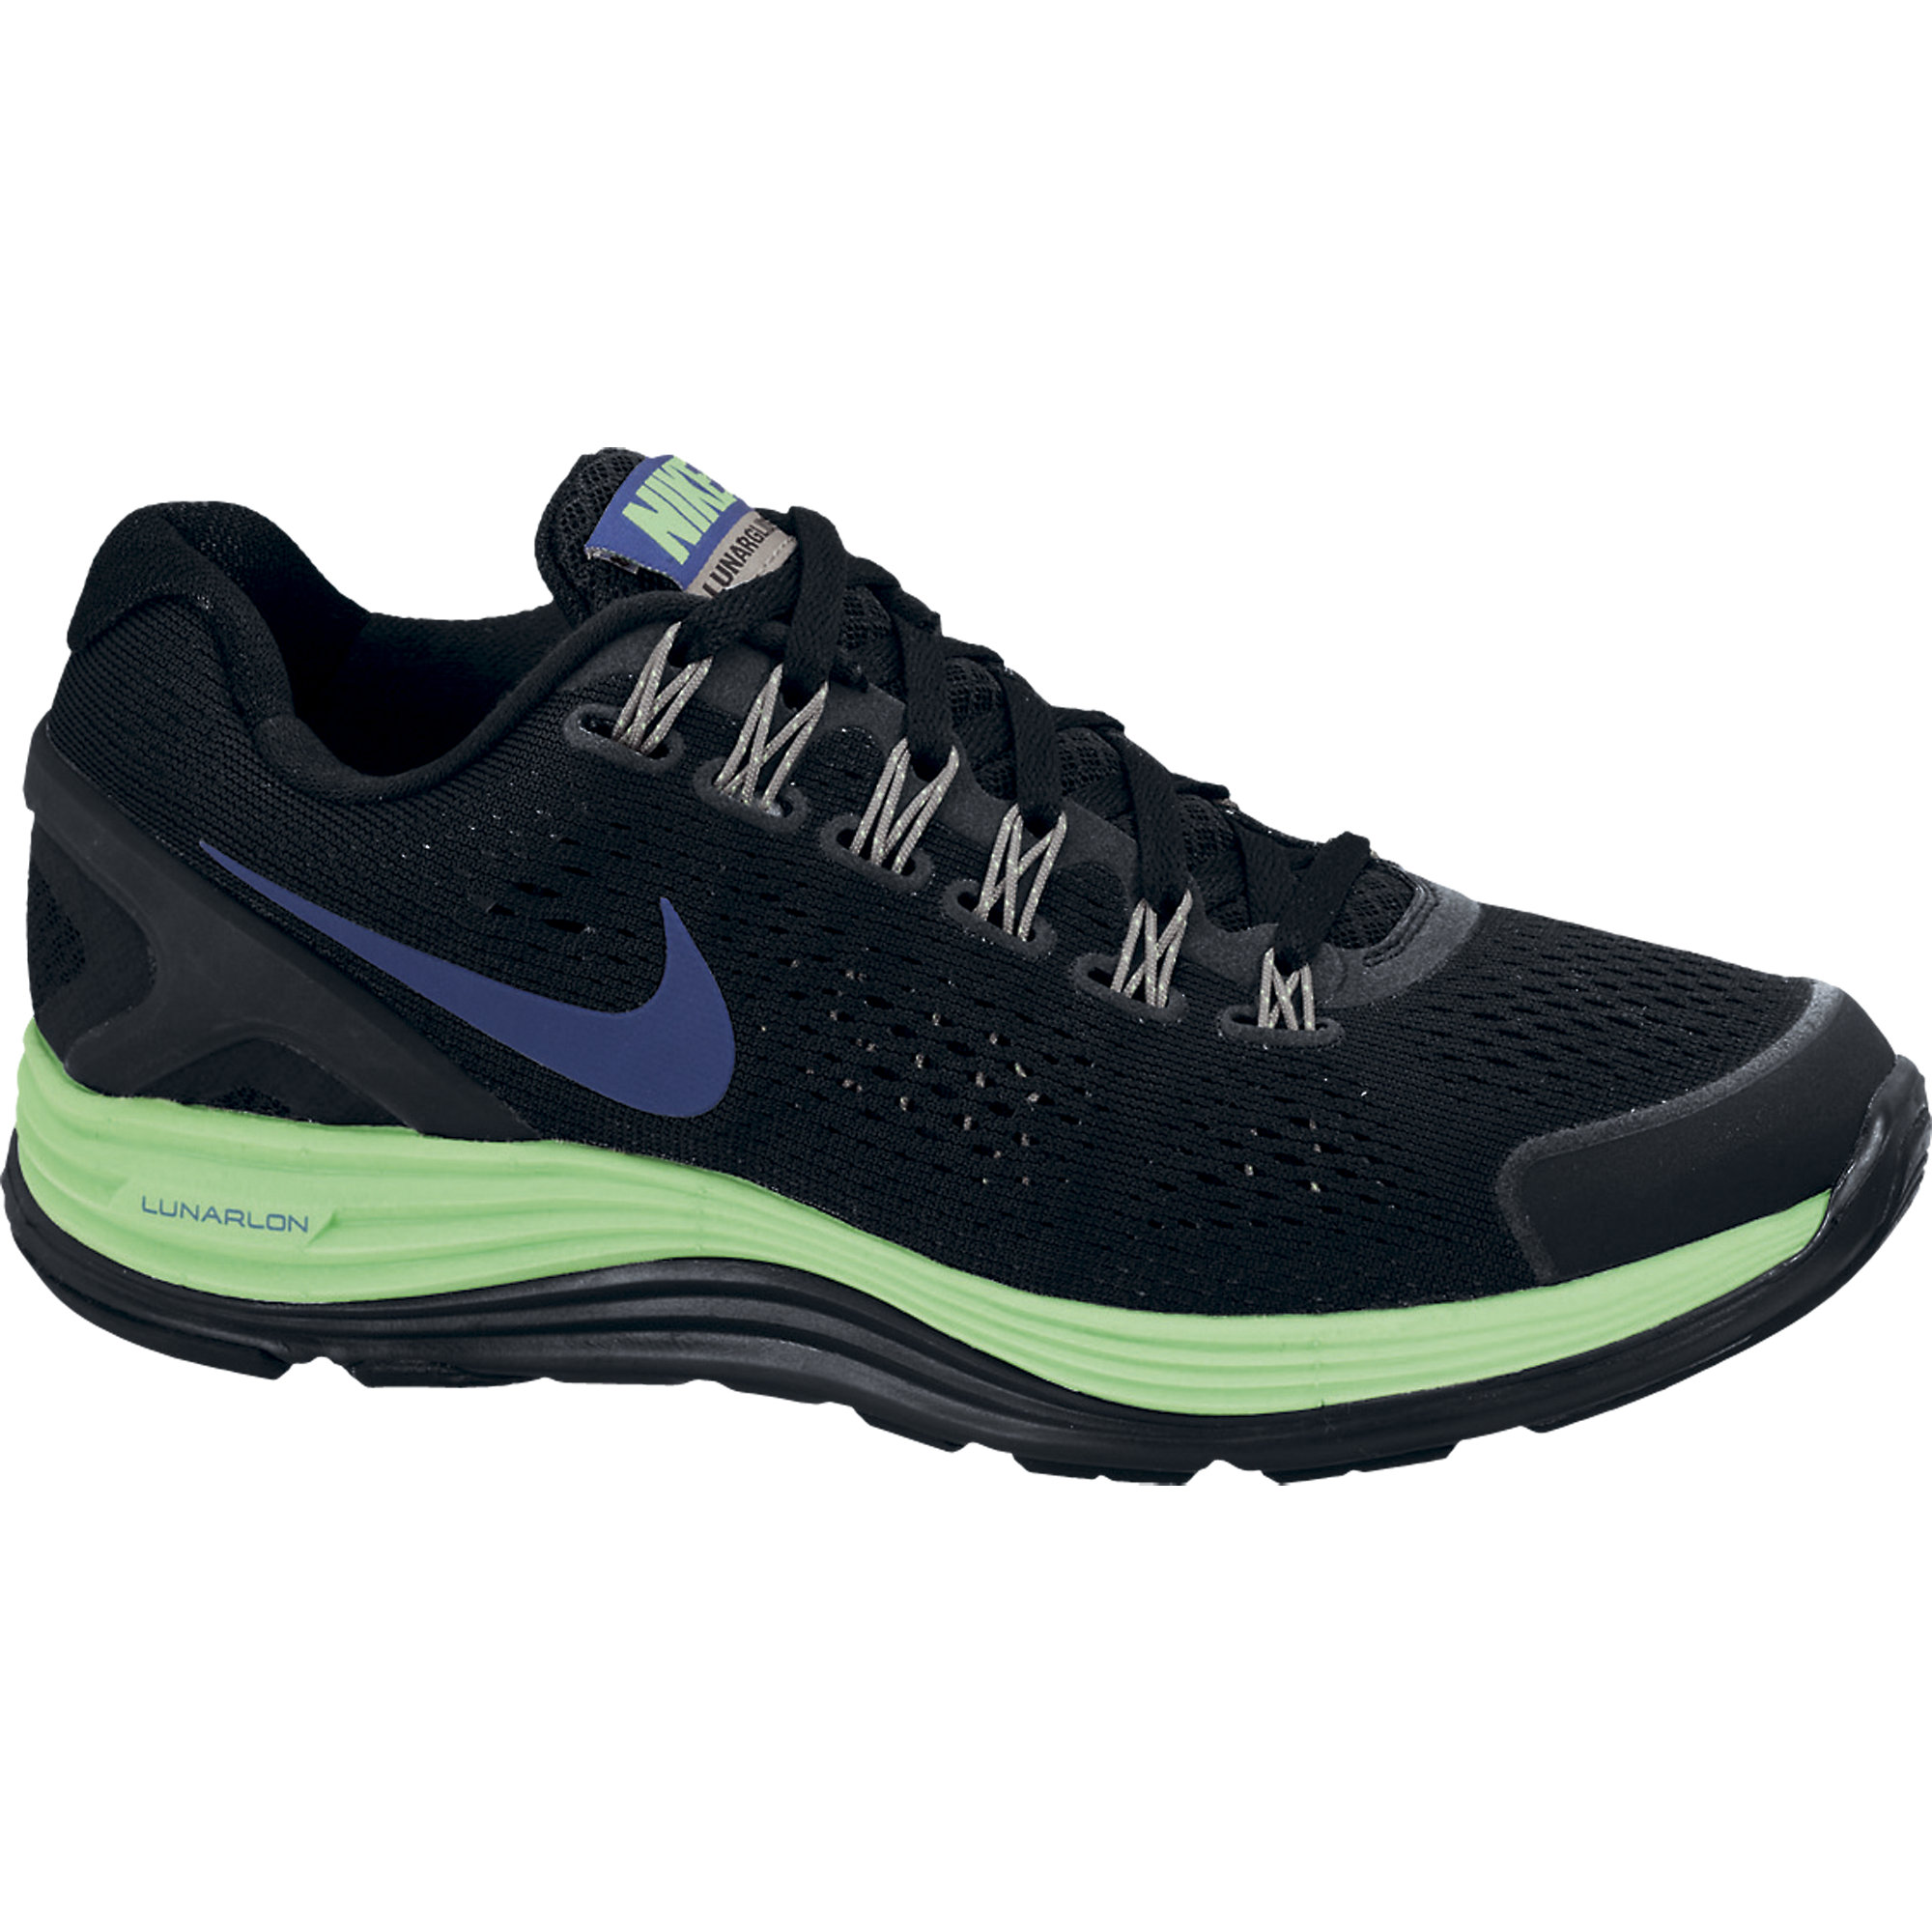 New Design Nike Shoes For Boys